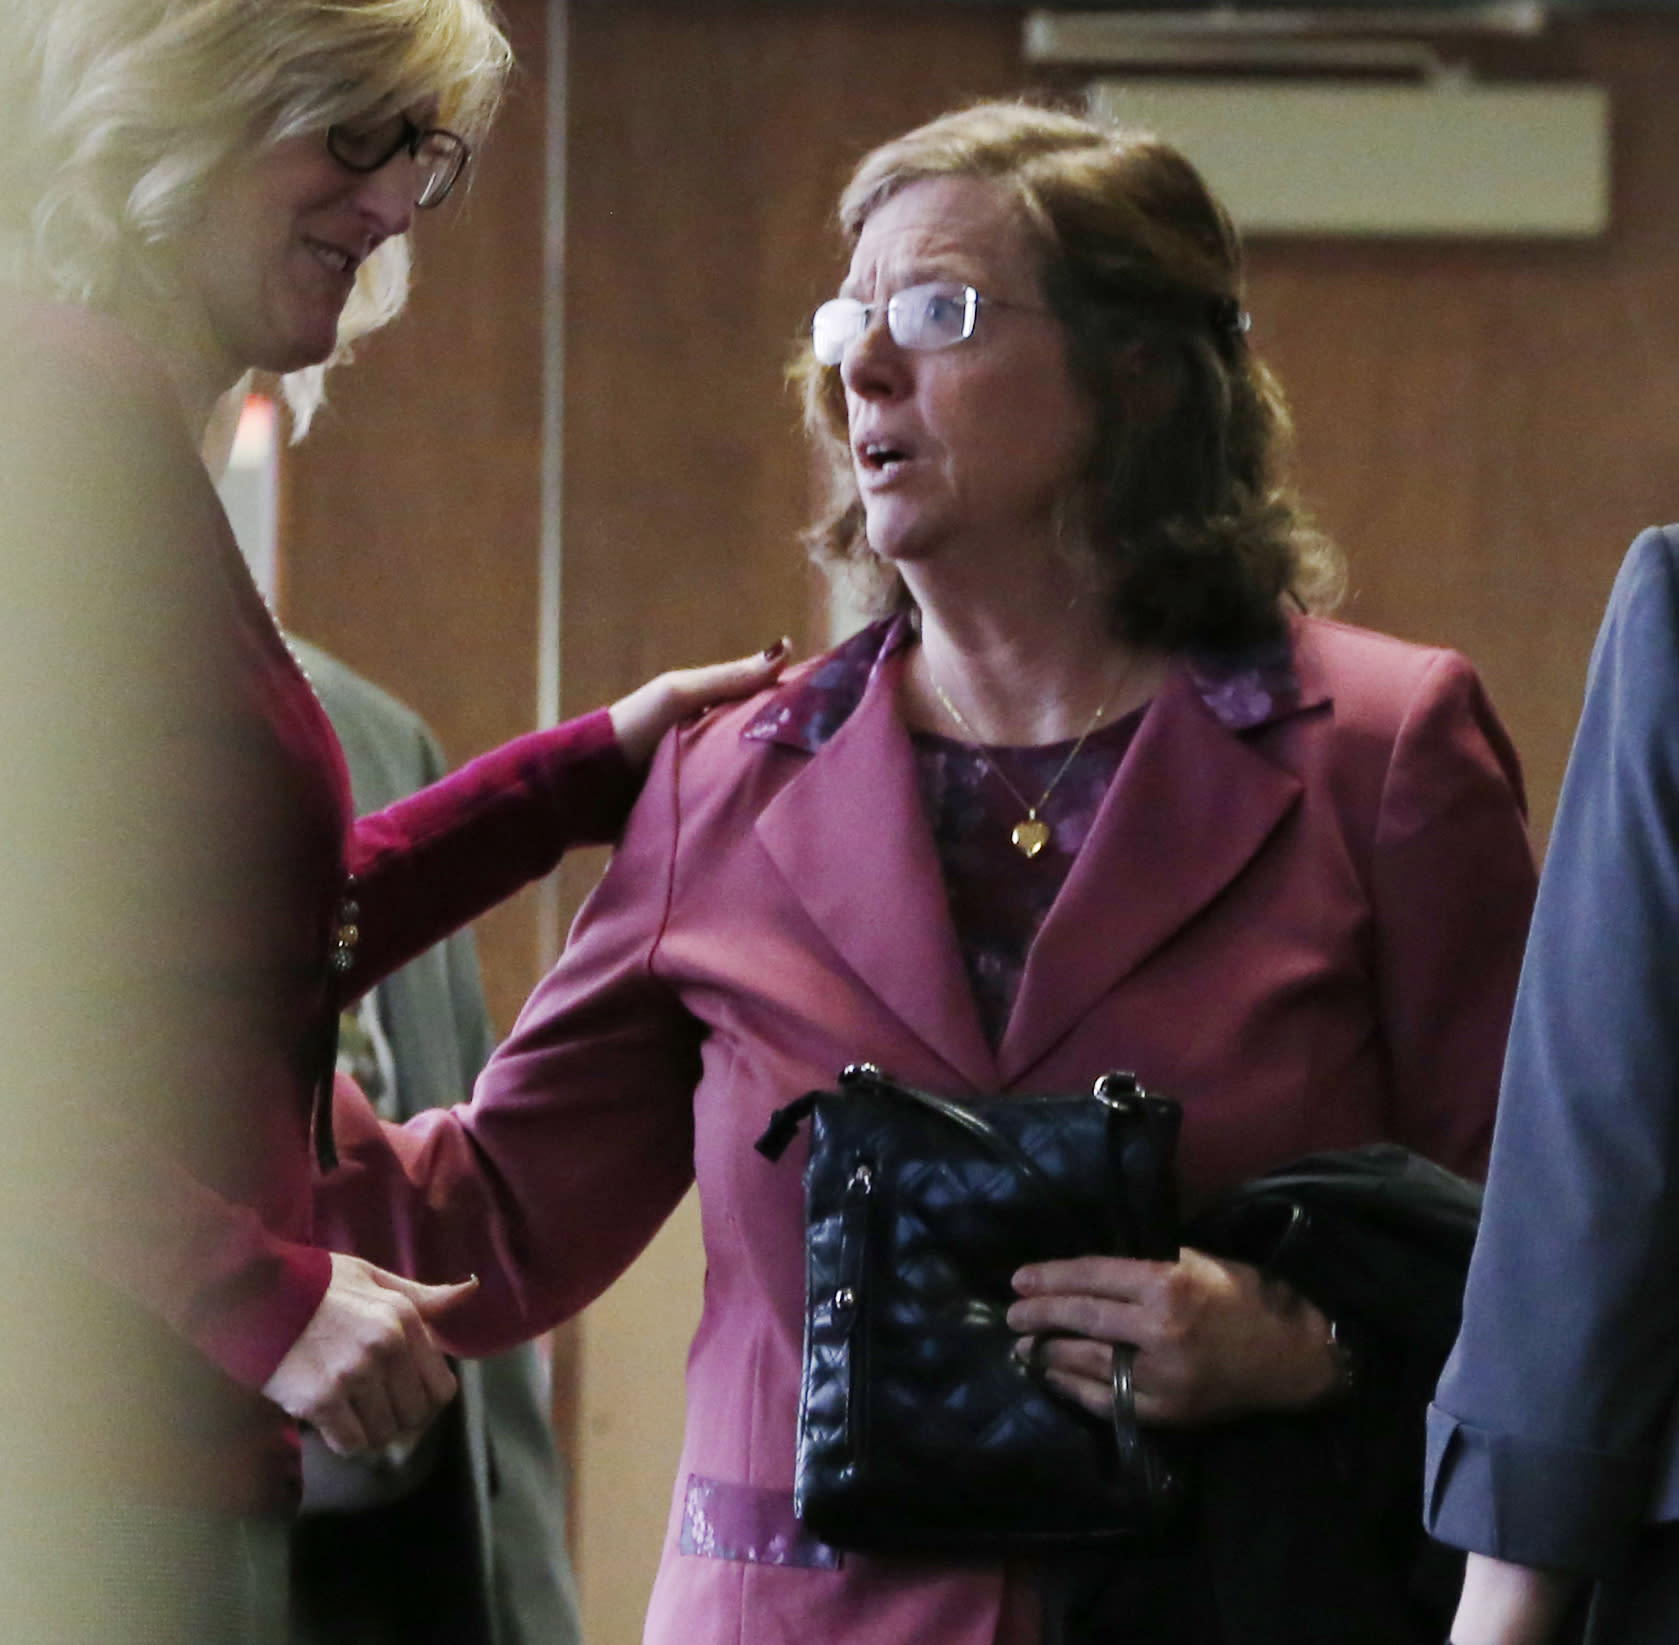 Colorado theater shooter's mom feels guilt over his illness